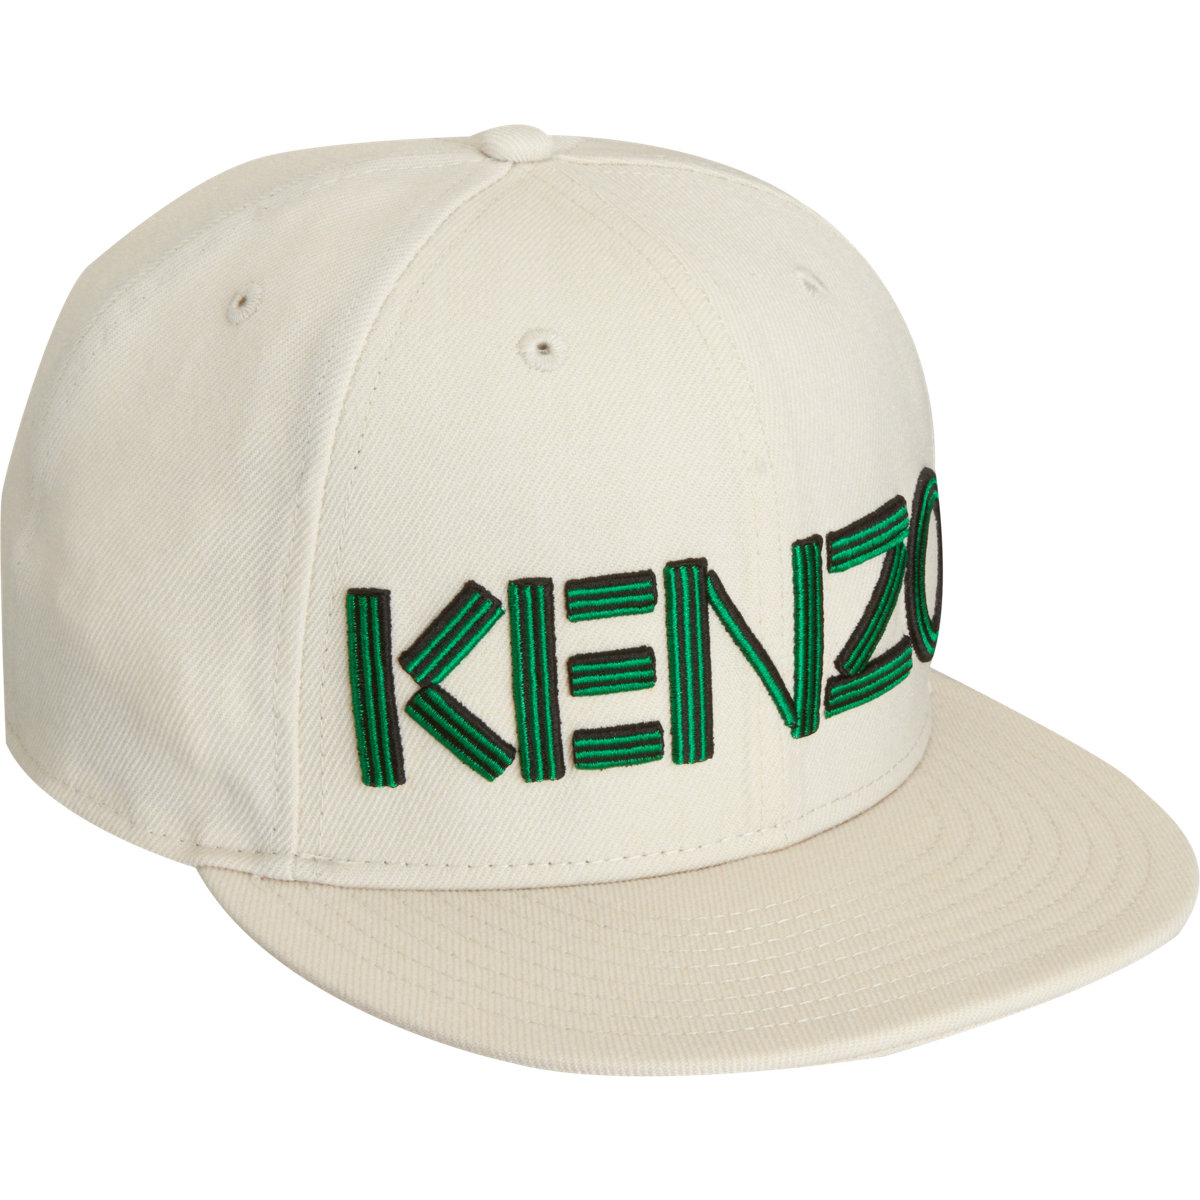 Kenzo embroidered hat in green for men white lyst